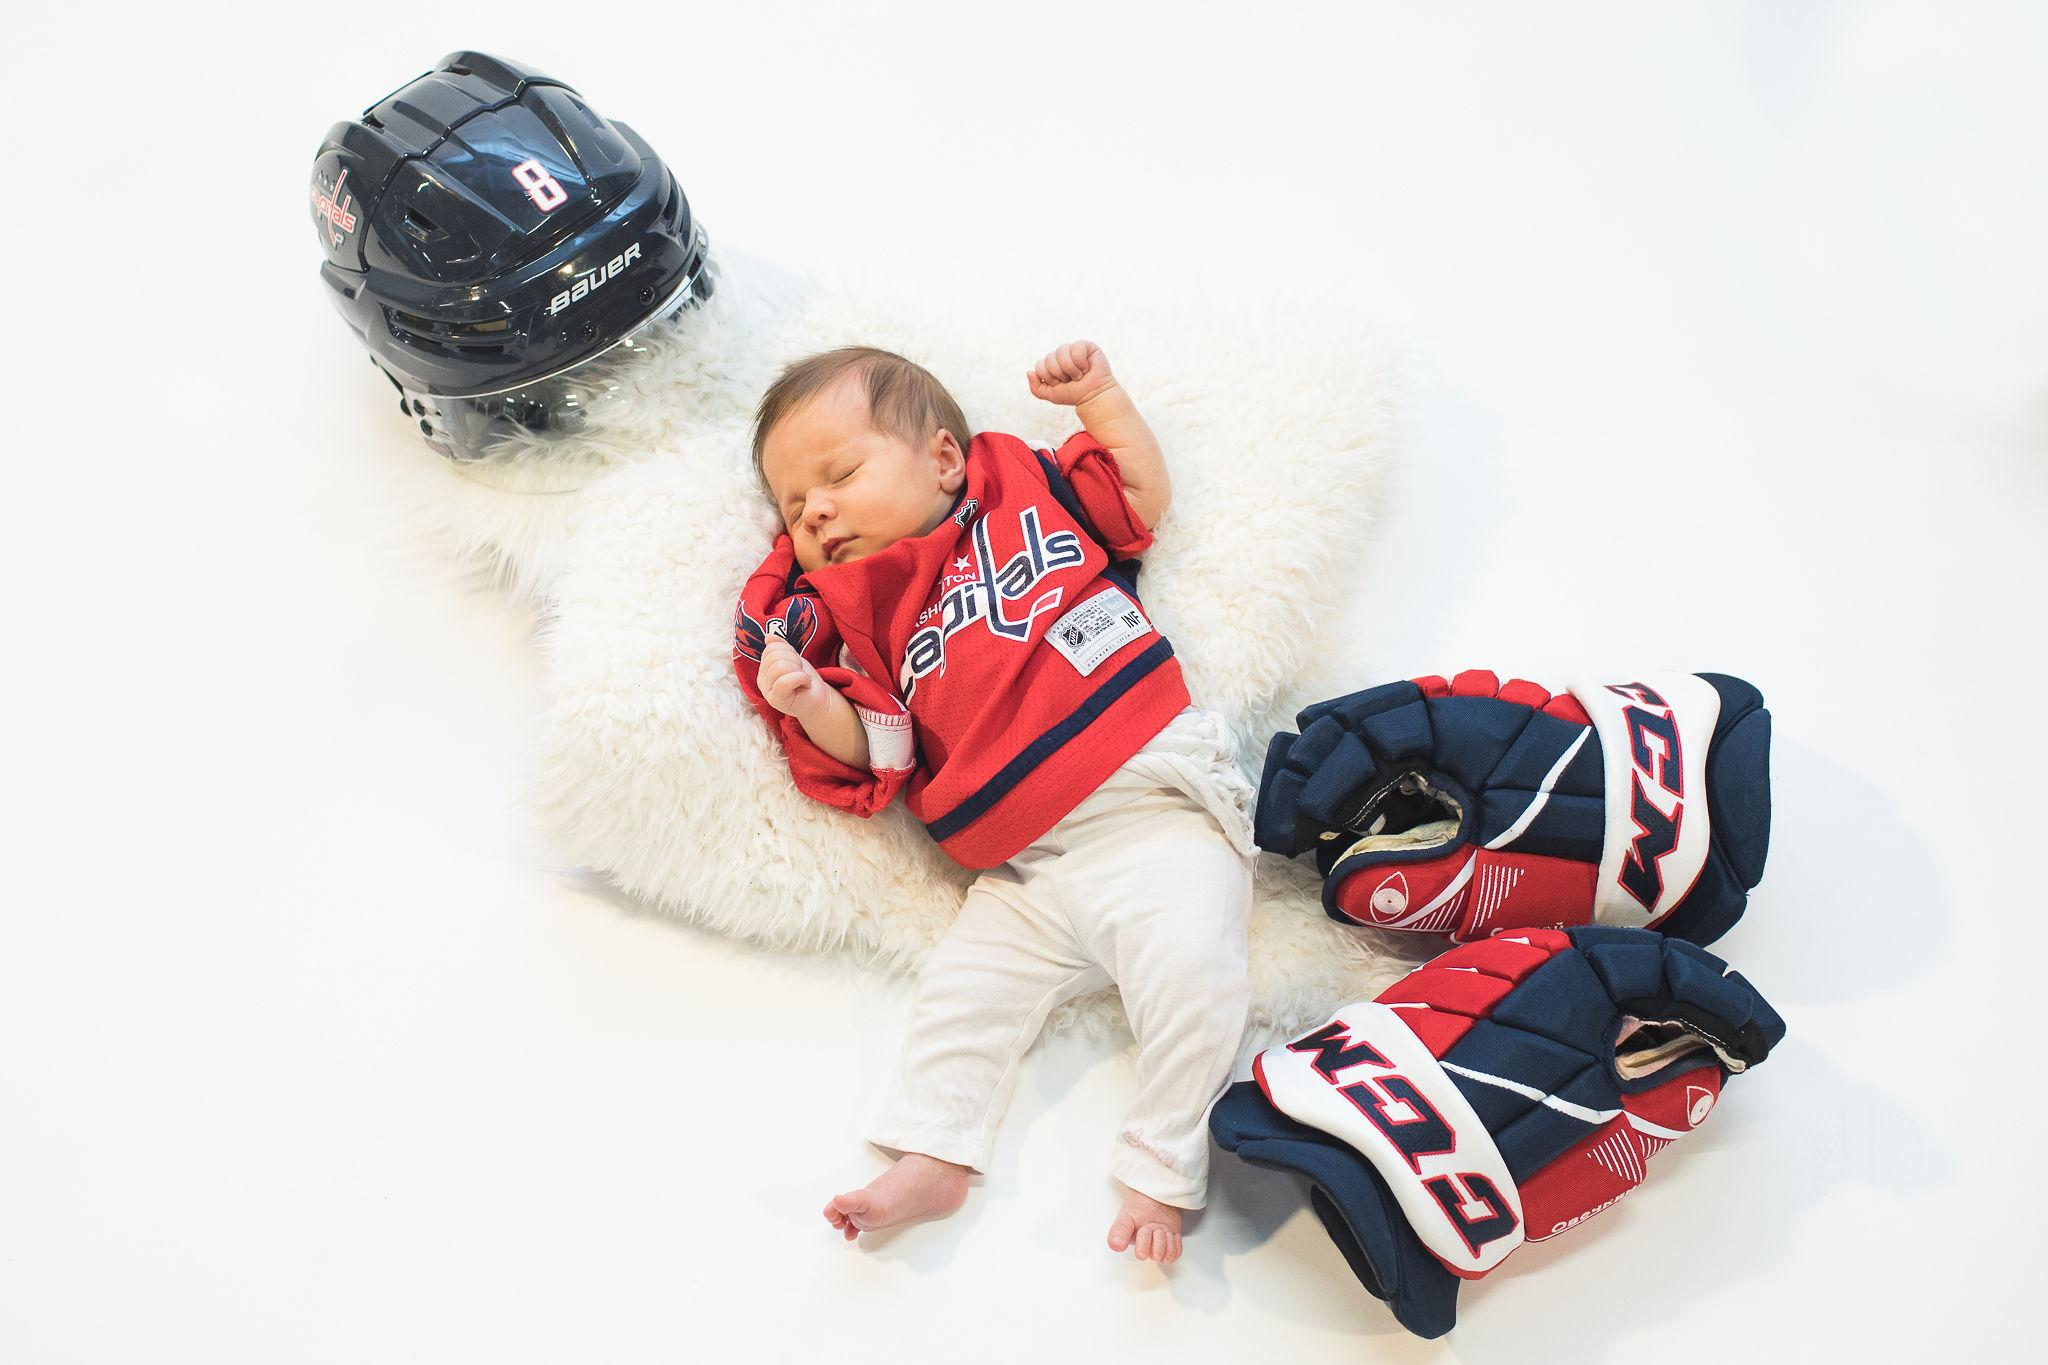 Baby Alexis (Courtesy of Capitals)